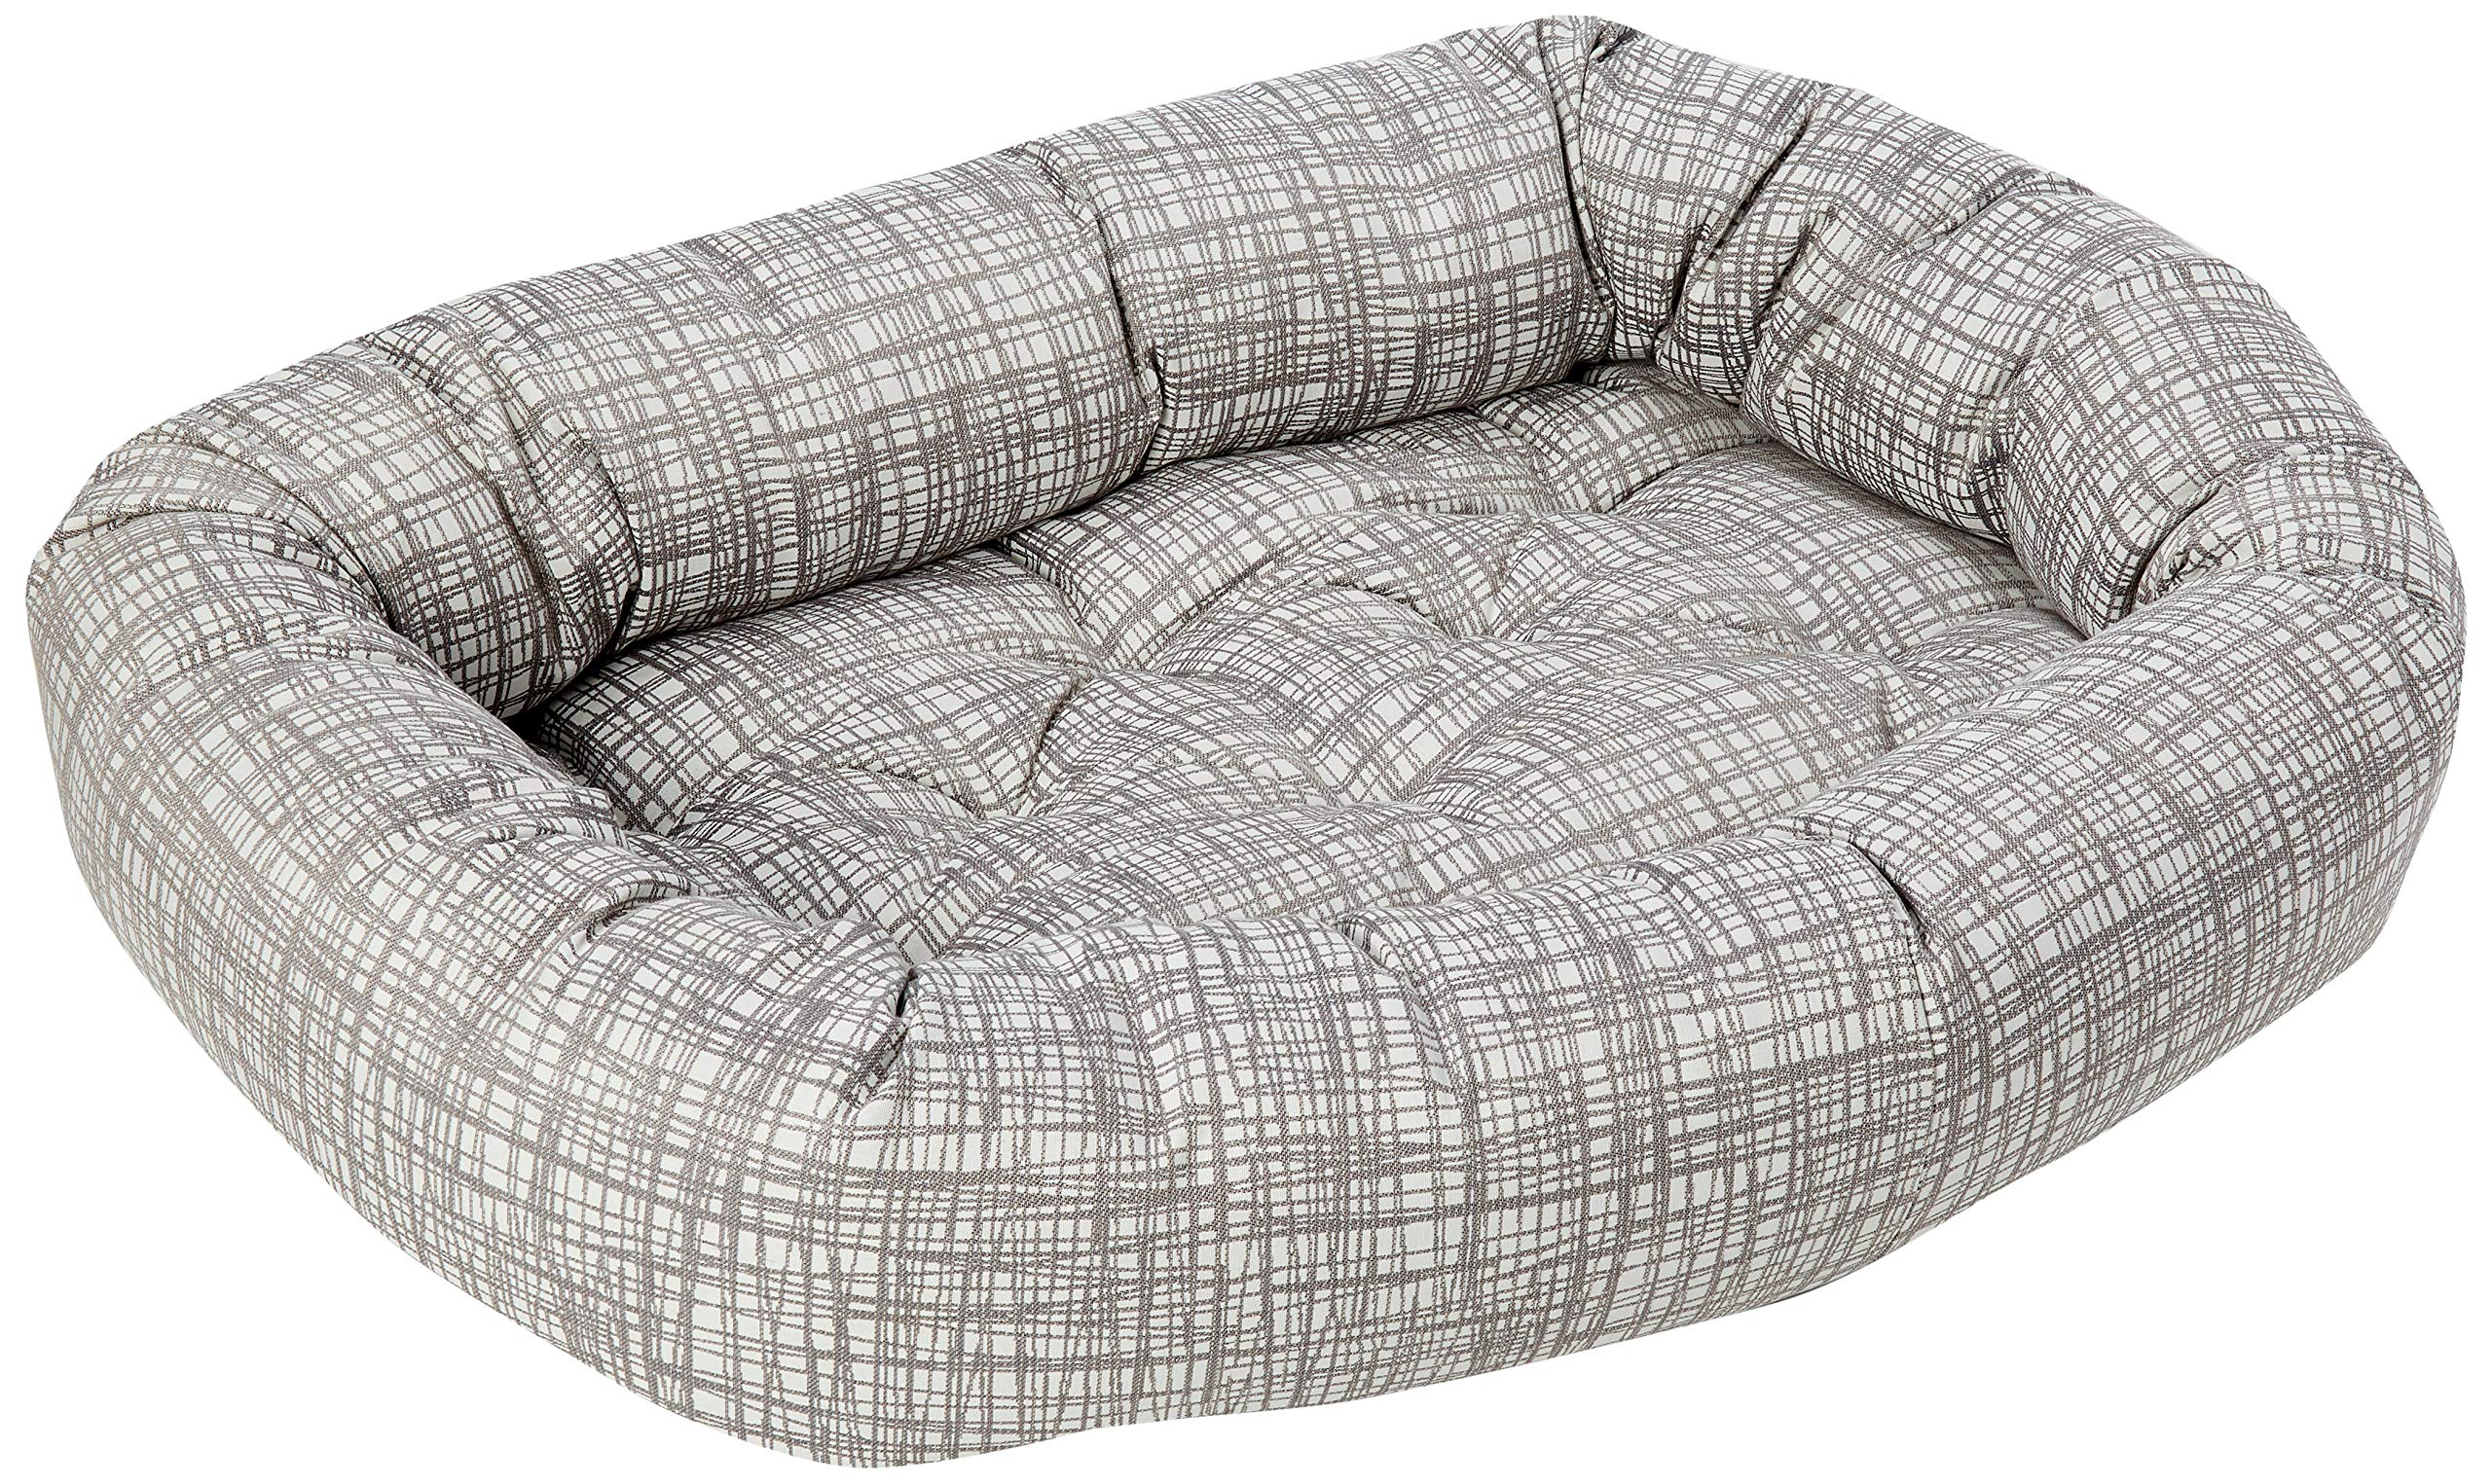 Bowsers Donut Bed, Large, Tribeca by Bowsers